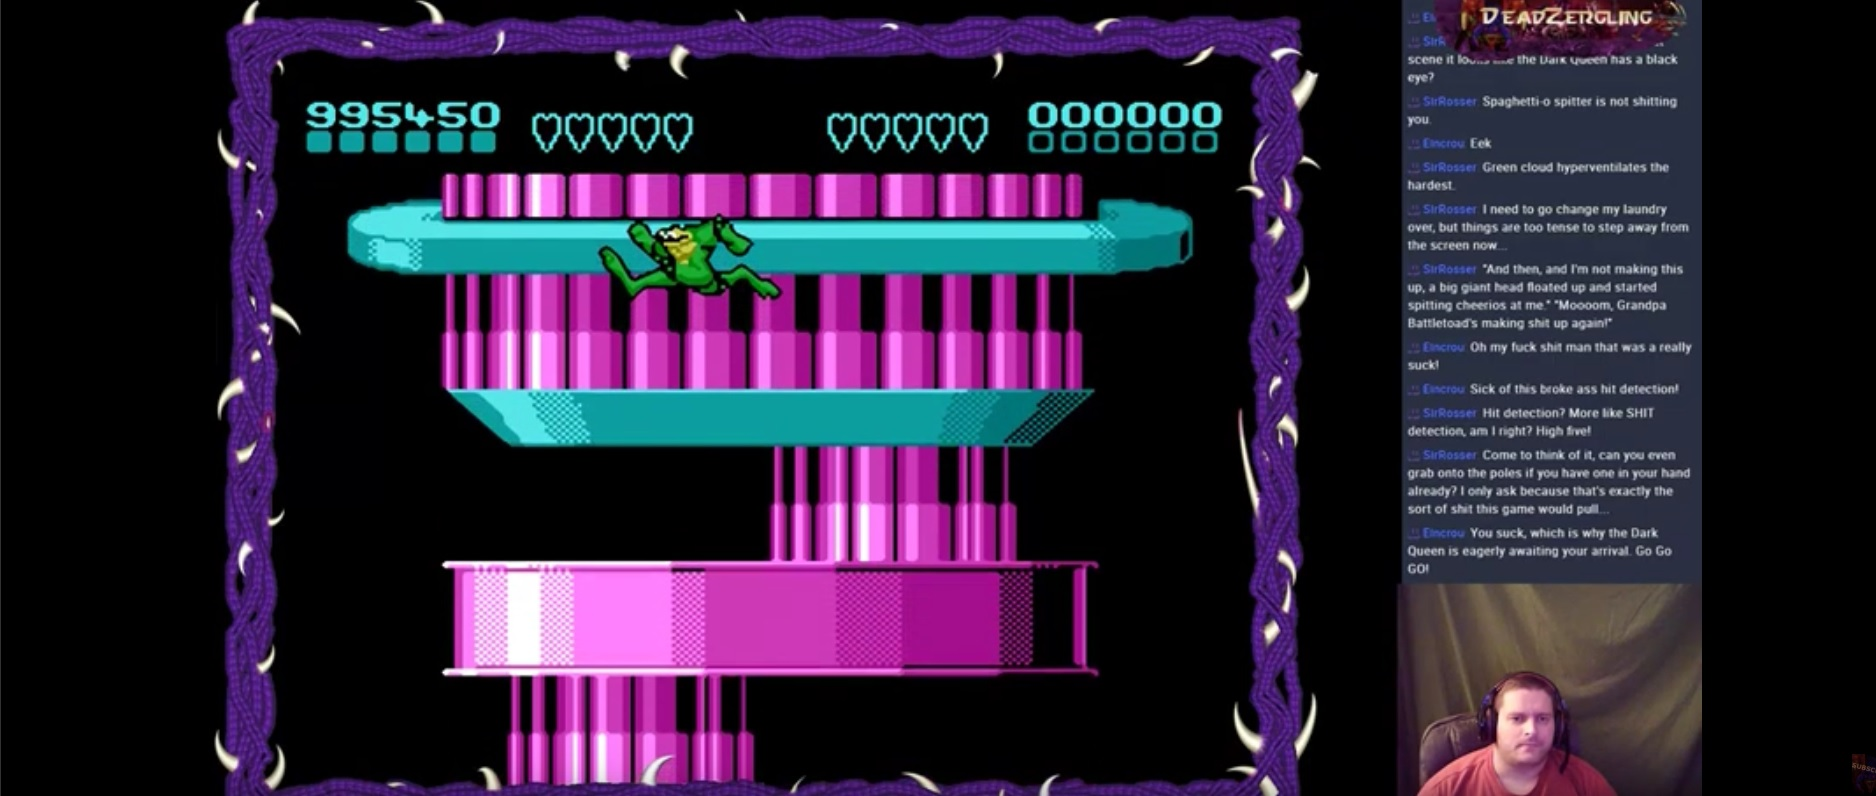 Battletoads 995,450 points